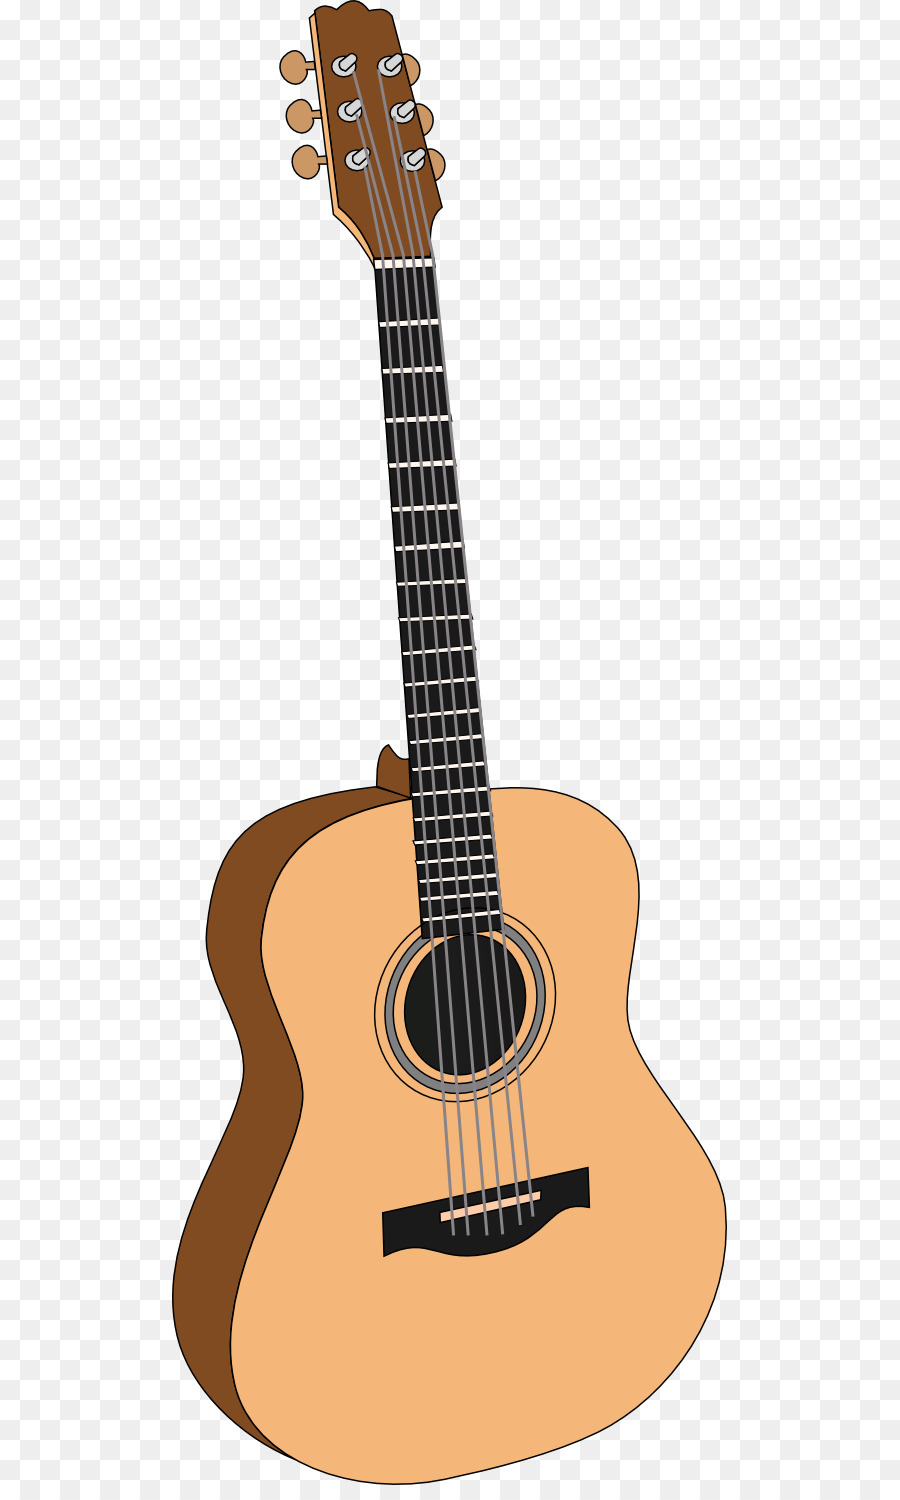 acoustic guitar clipart at getdrawings com free for personal use rh getdrawings com acoustic guitar music clipart blue acoustic guitar clipart